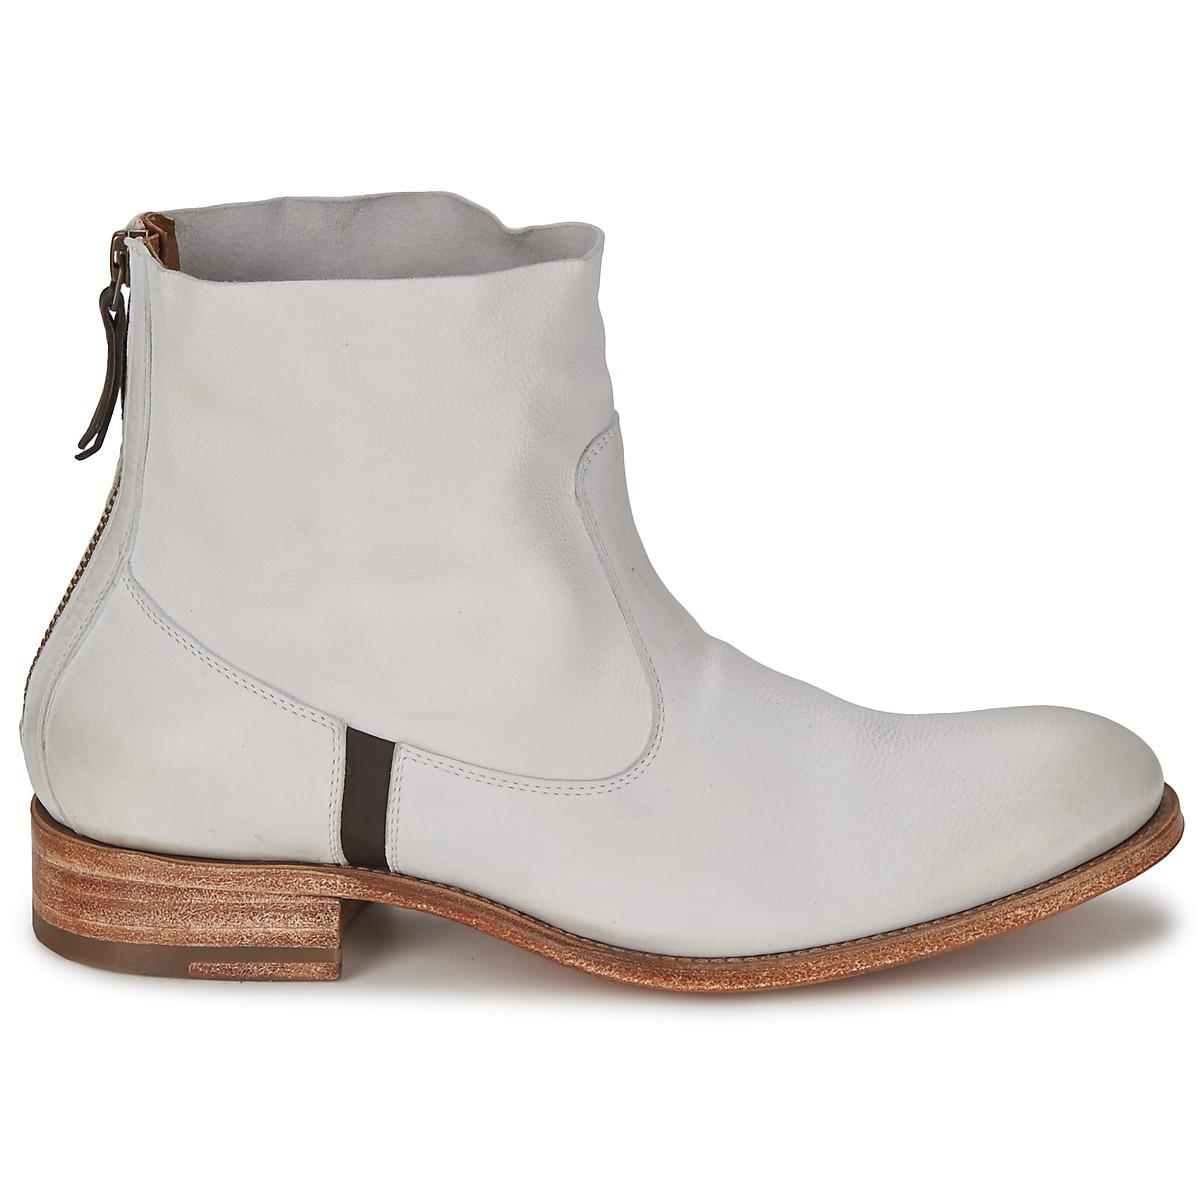 NDC Leather Sylvia Oxide Mid Boots in White